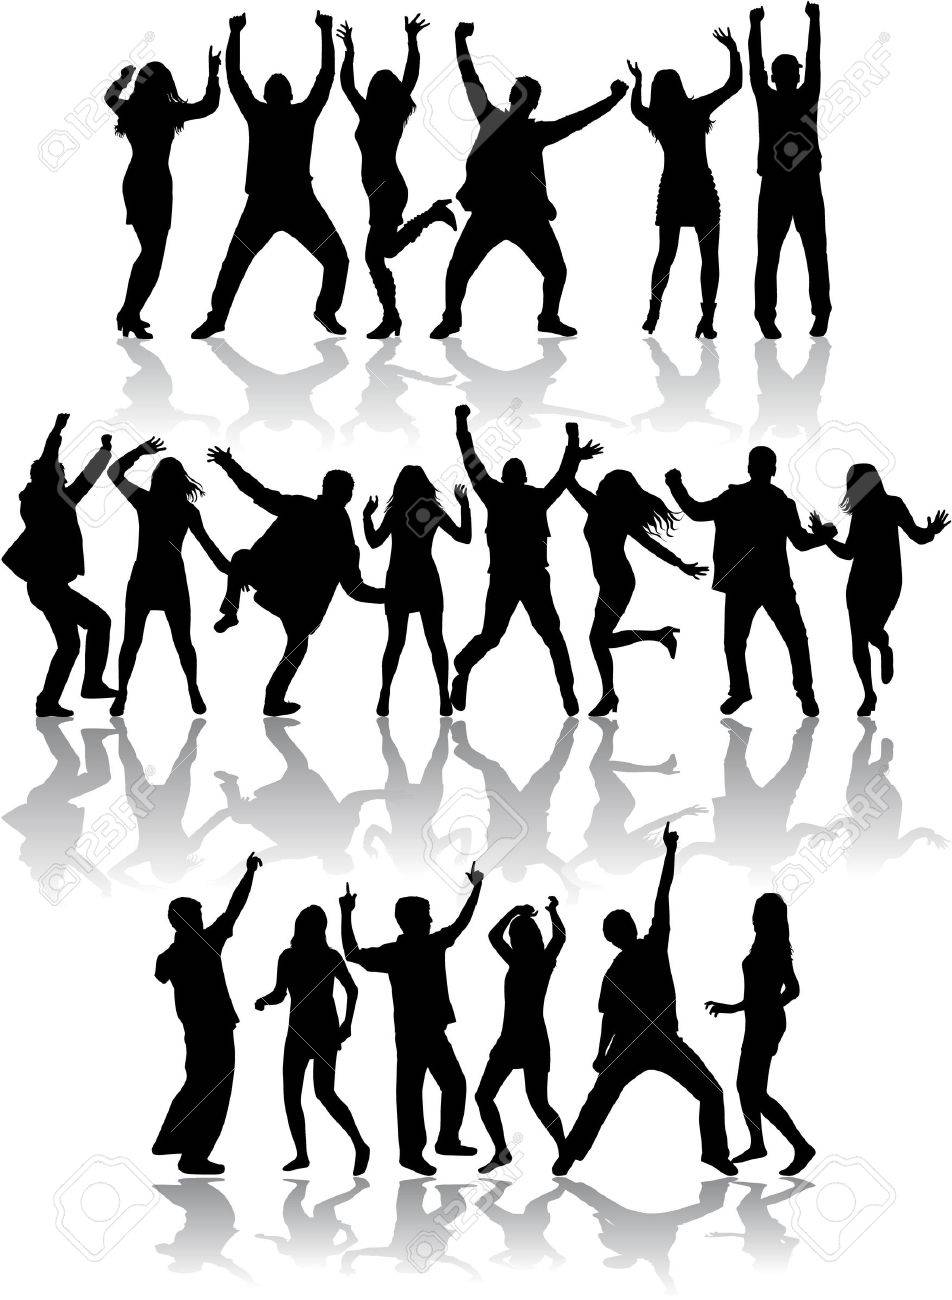 Dancing silhouettes - 36275851